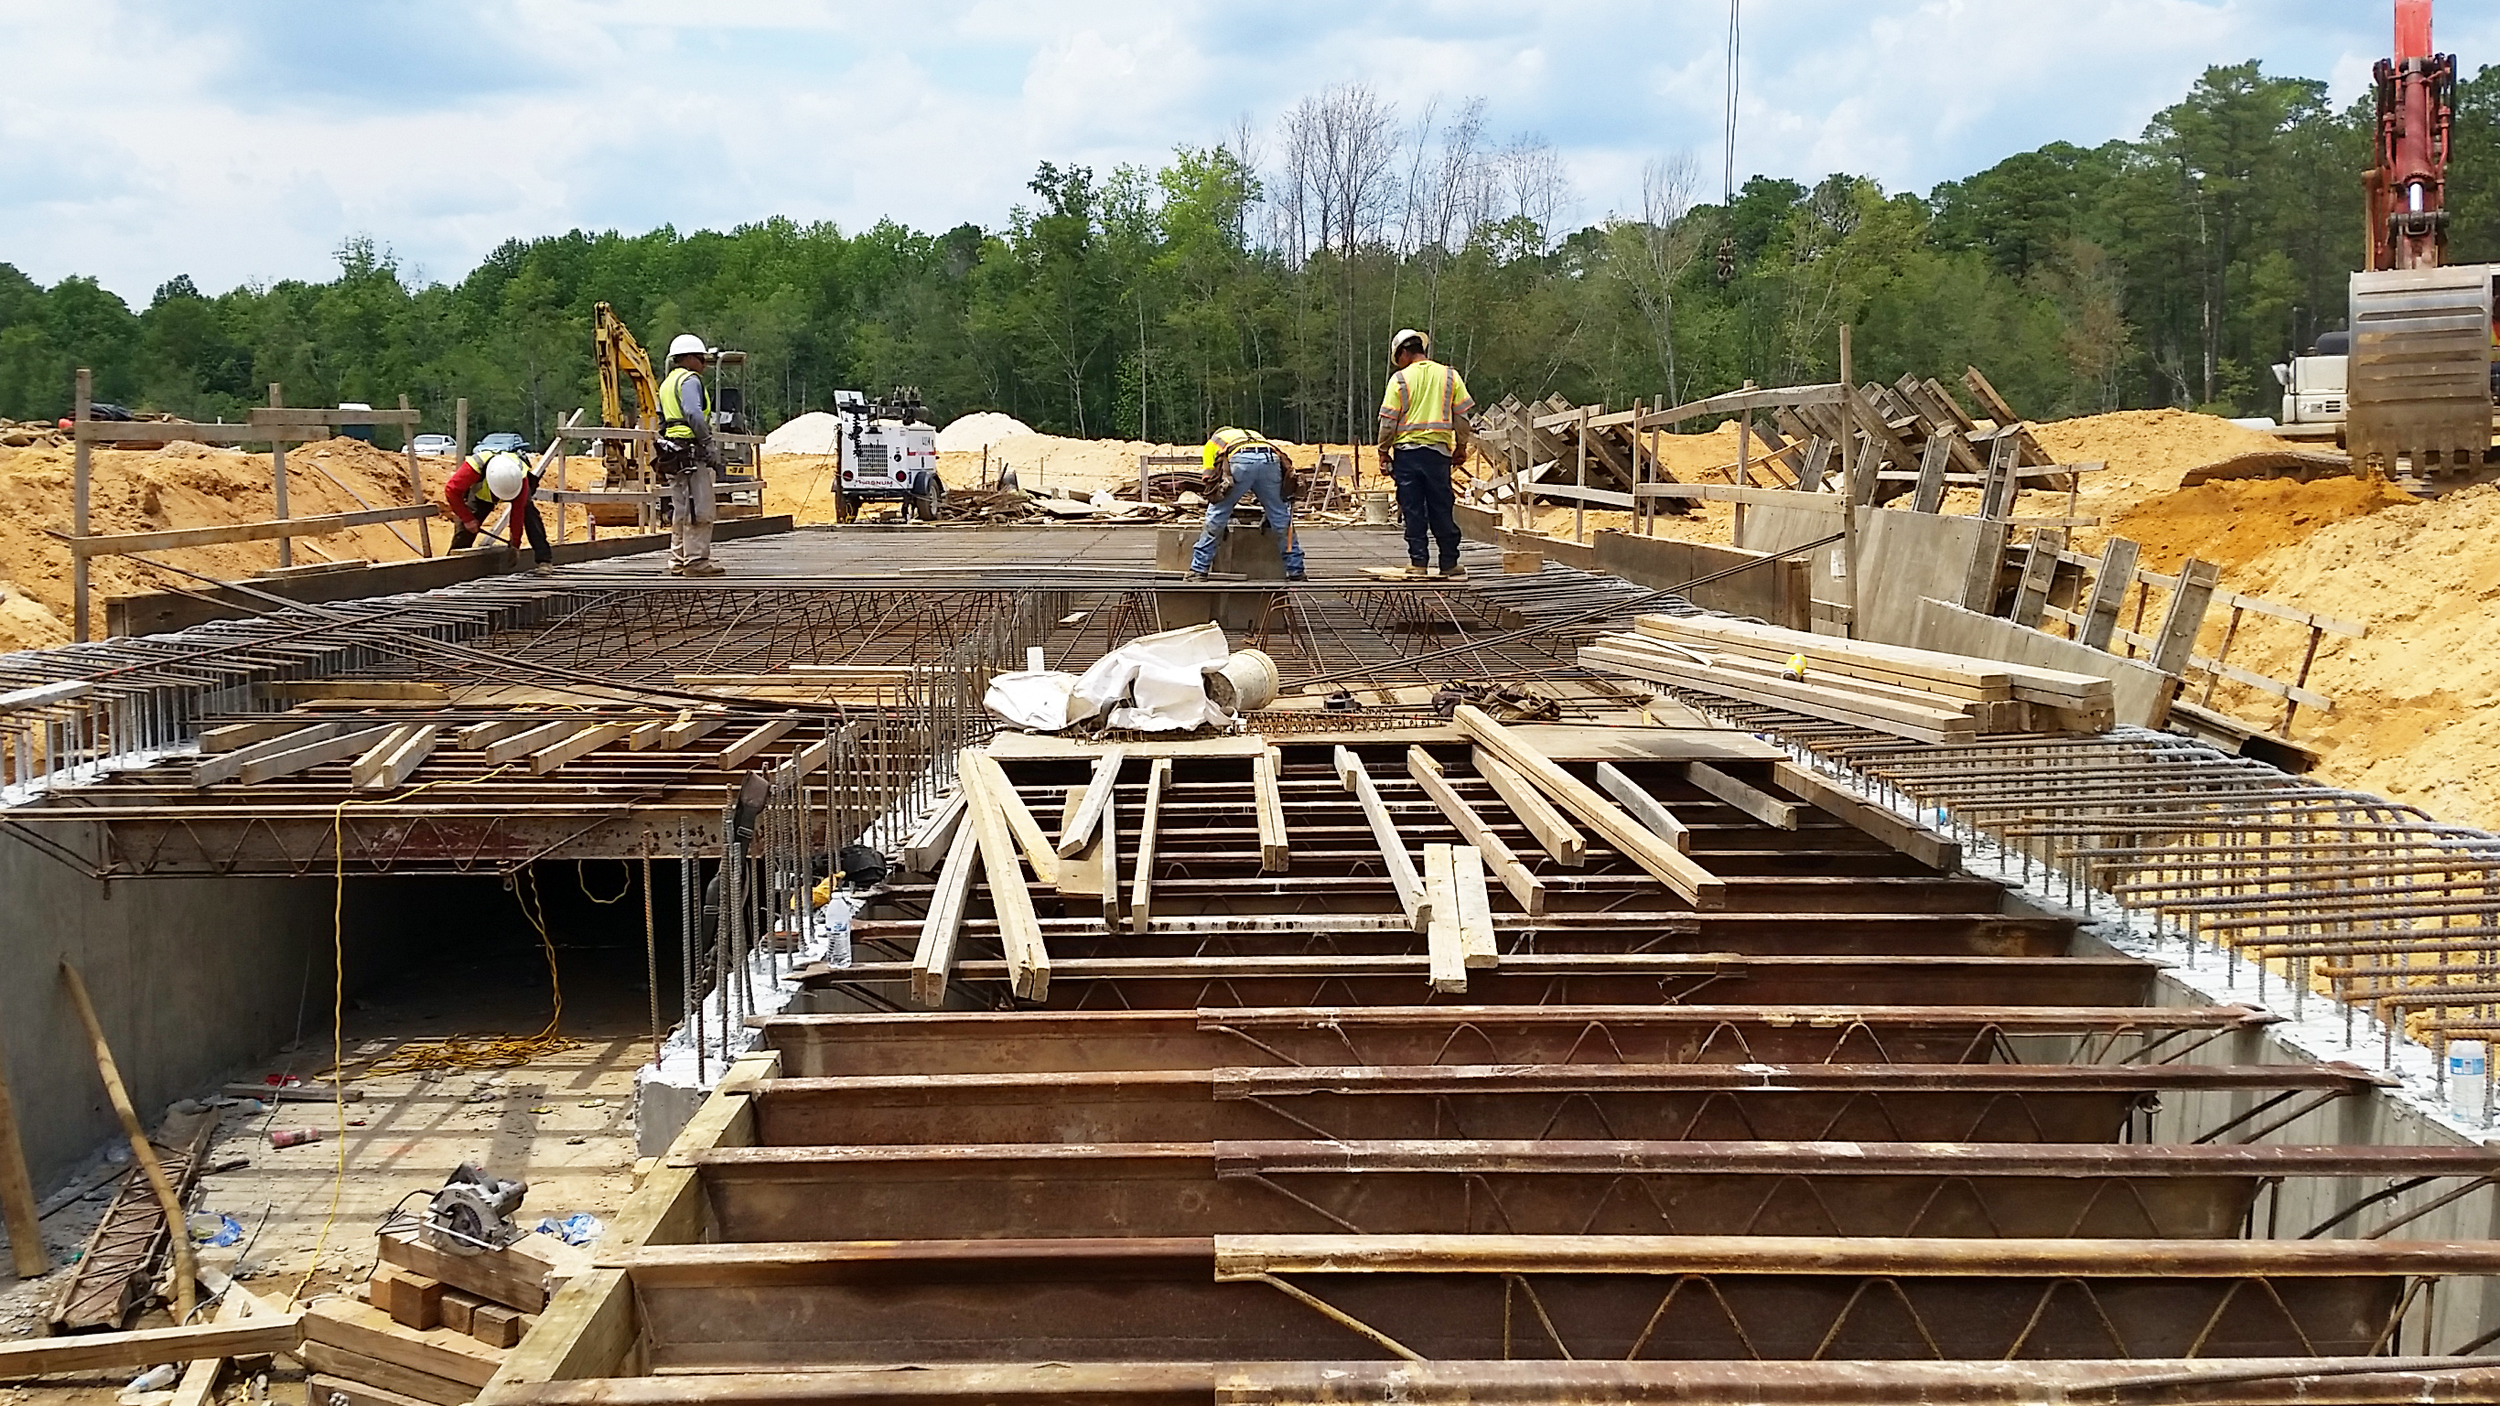 Figure 2. Reinforcing steel provides essential tensile strength to the culvert foundation, walls, and roof